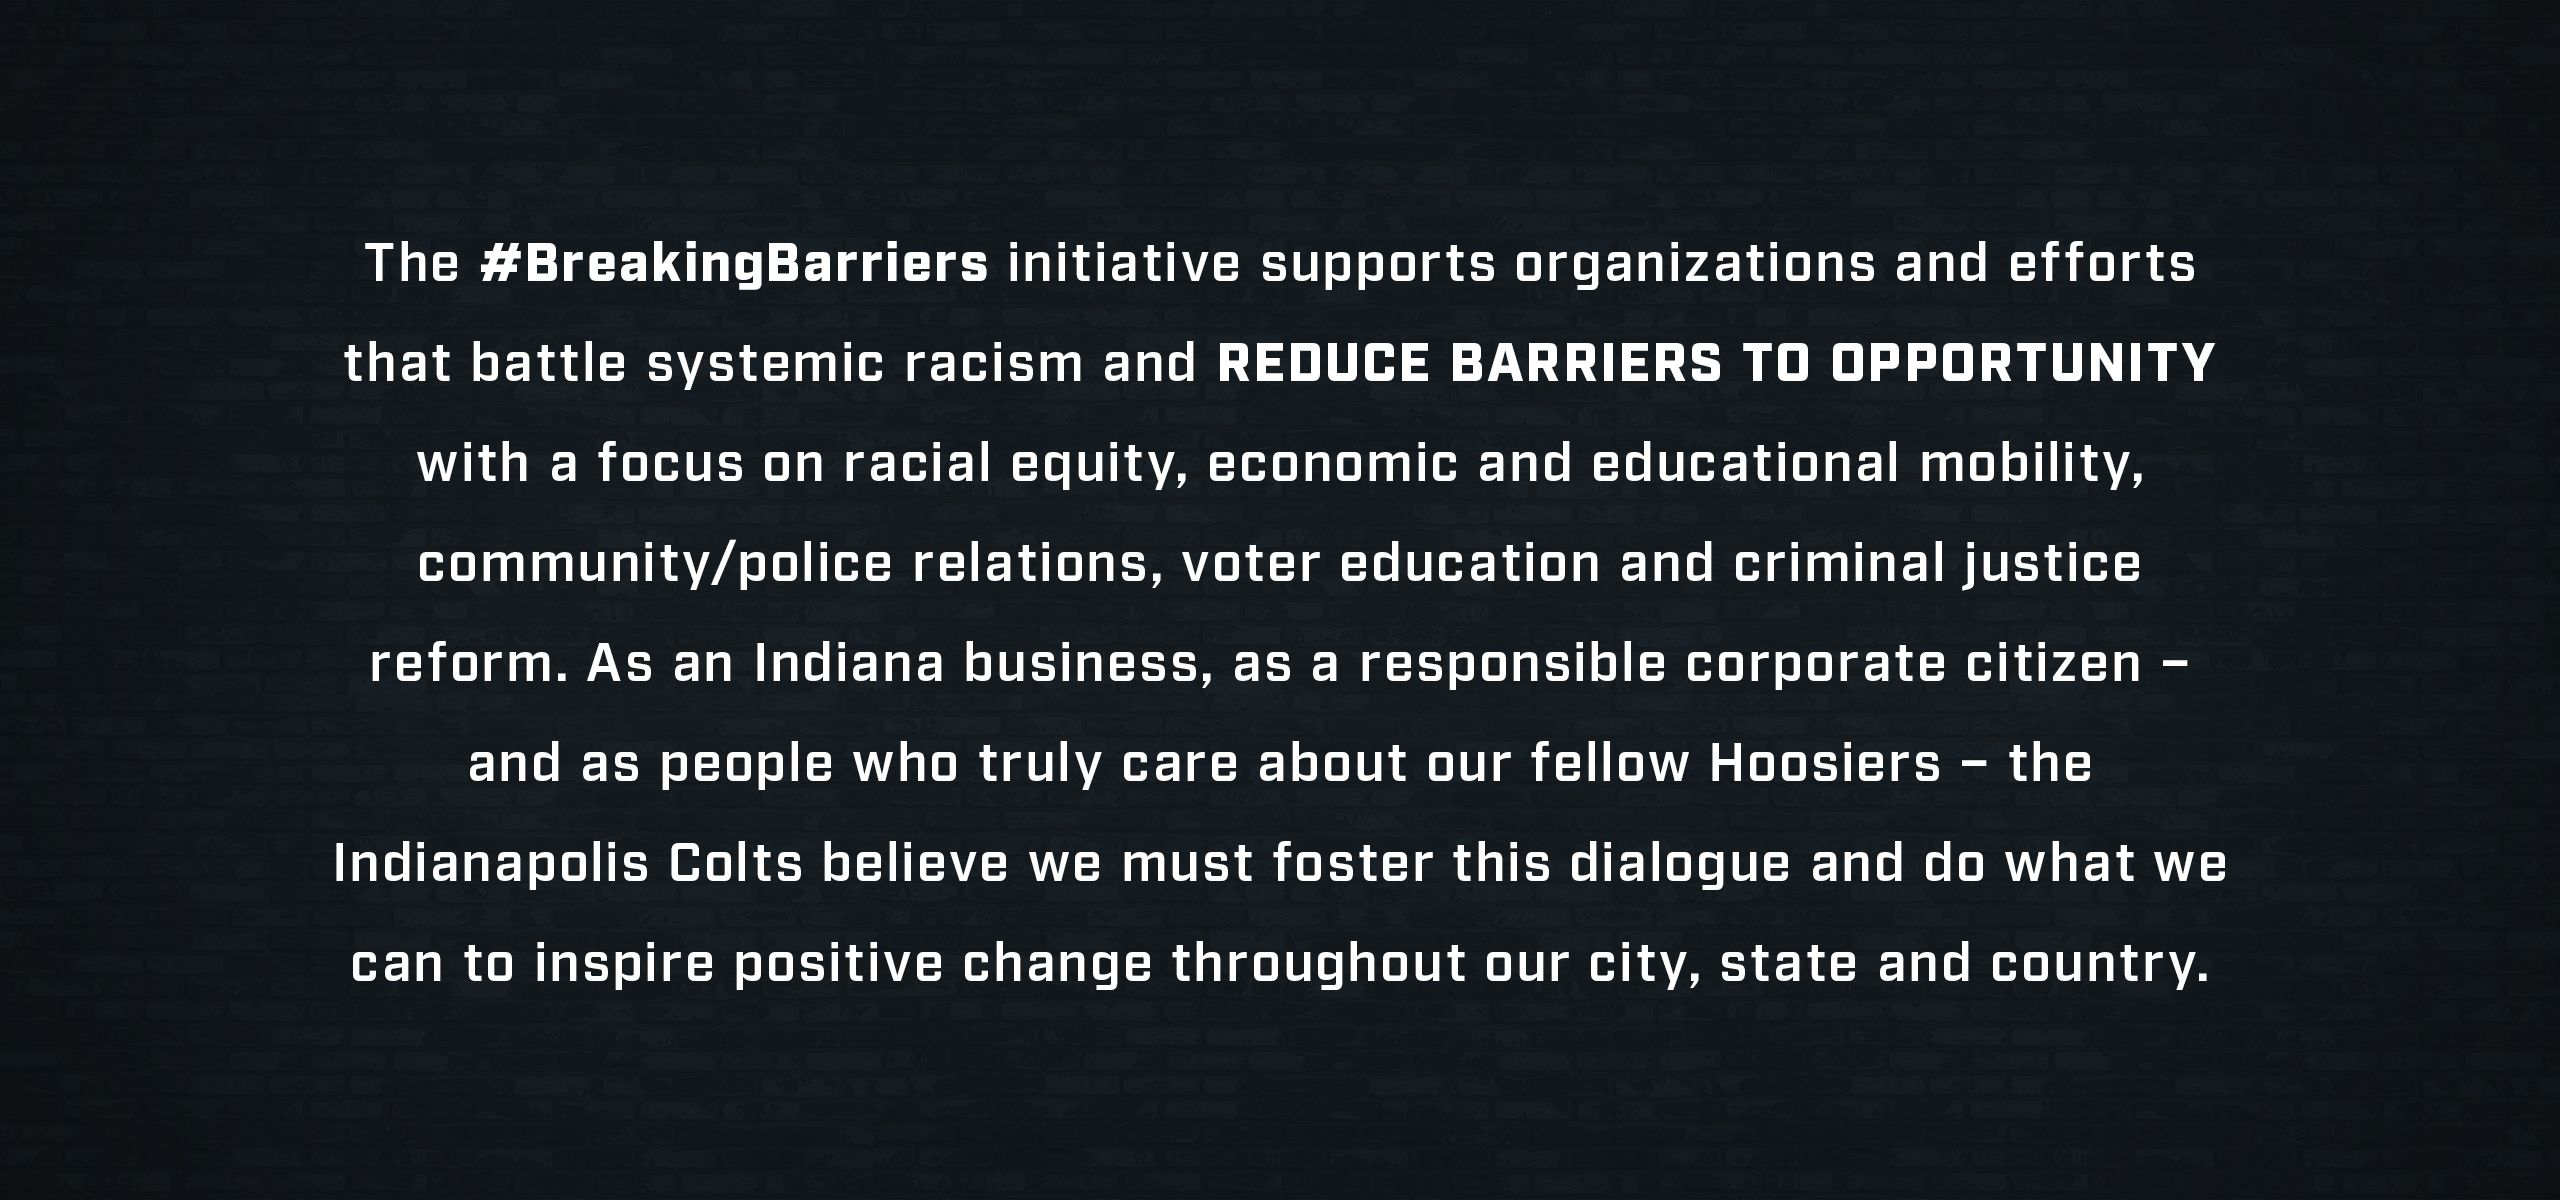 _The #Breaking Barriers initiative supports organizations and efforts that battle systemic racism and reduce barriers to opportunity with a focus on racial equity, economic and educational mobility, community/police relations, voter education and criminal justice reform.As an Indiana business, as a responsible corporate citizen – and as people who truly care about our fellow Hoosiers – the Indianapolis Colts believe we must foster this dialogue and do what we can to inspire positive change throughout our city, state and country._